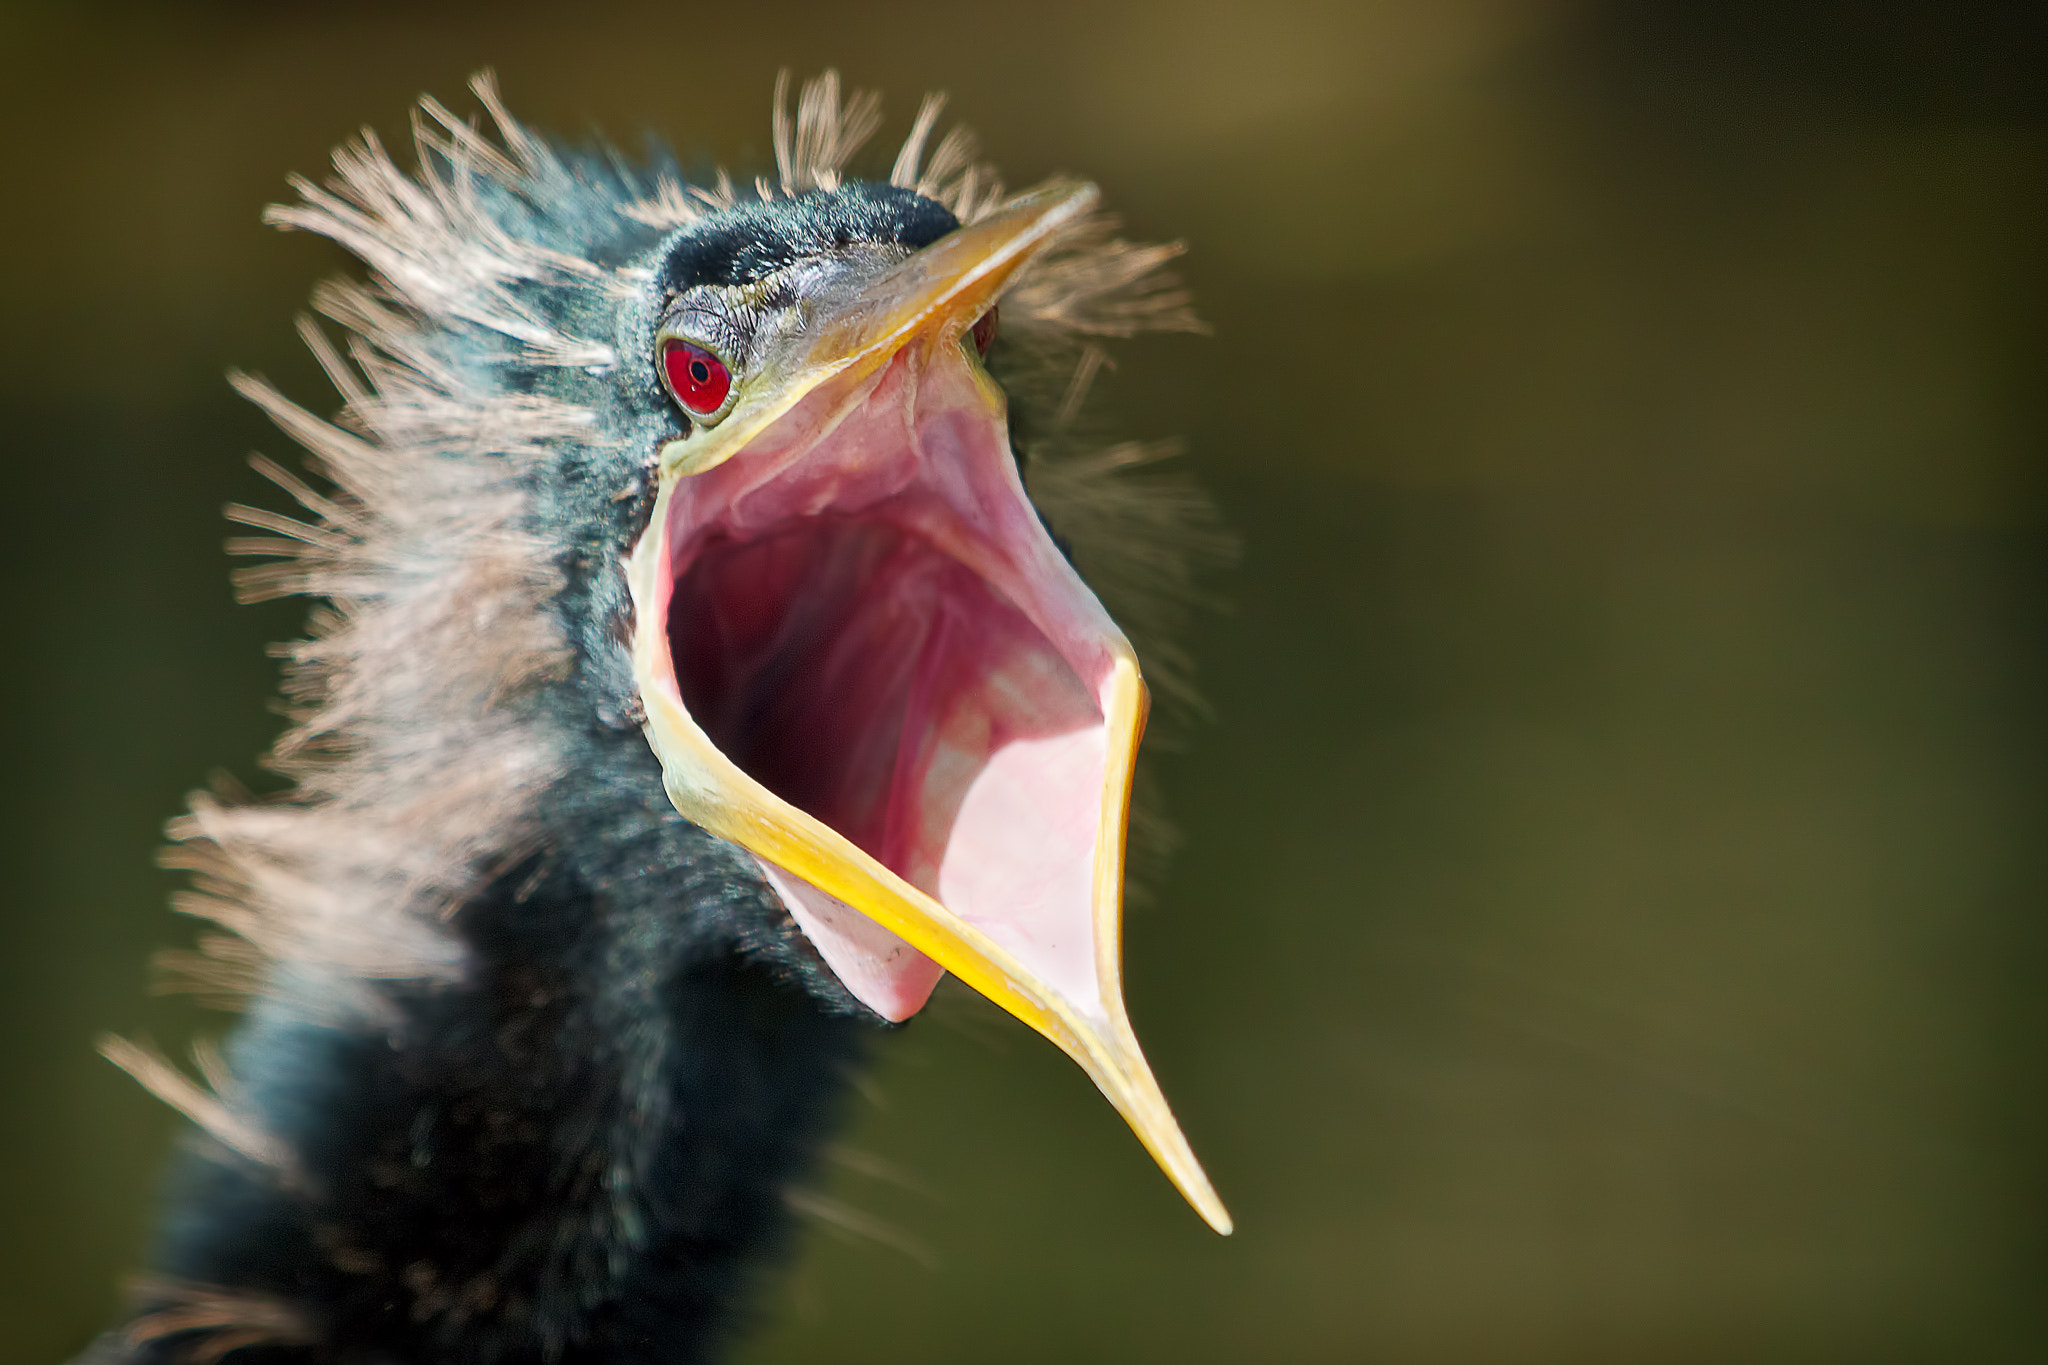 Photograph Scream by Dirk Seifert on 500px